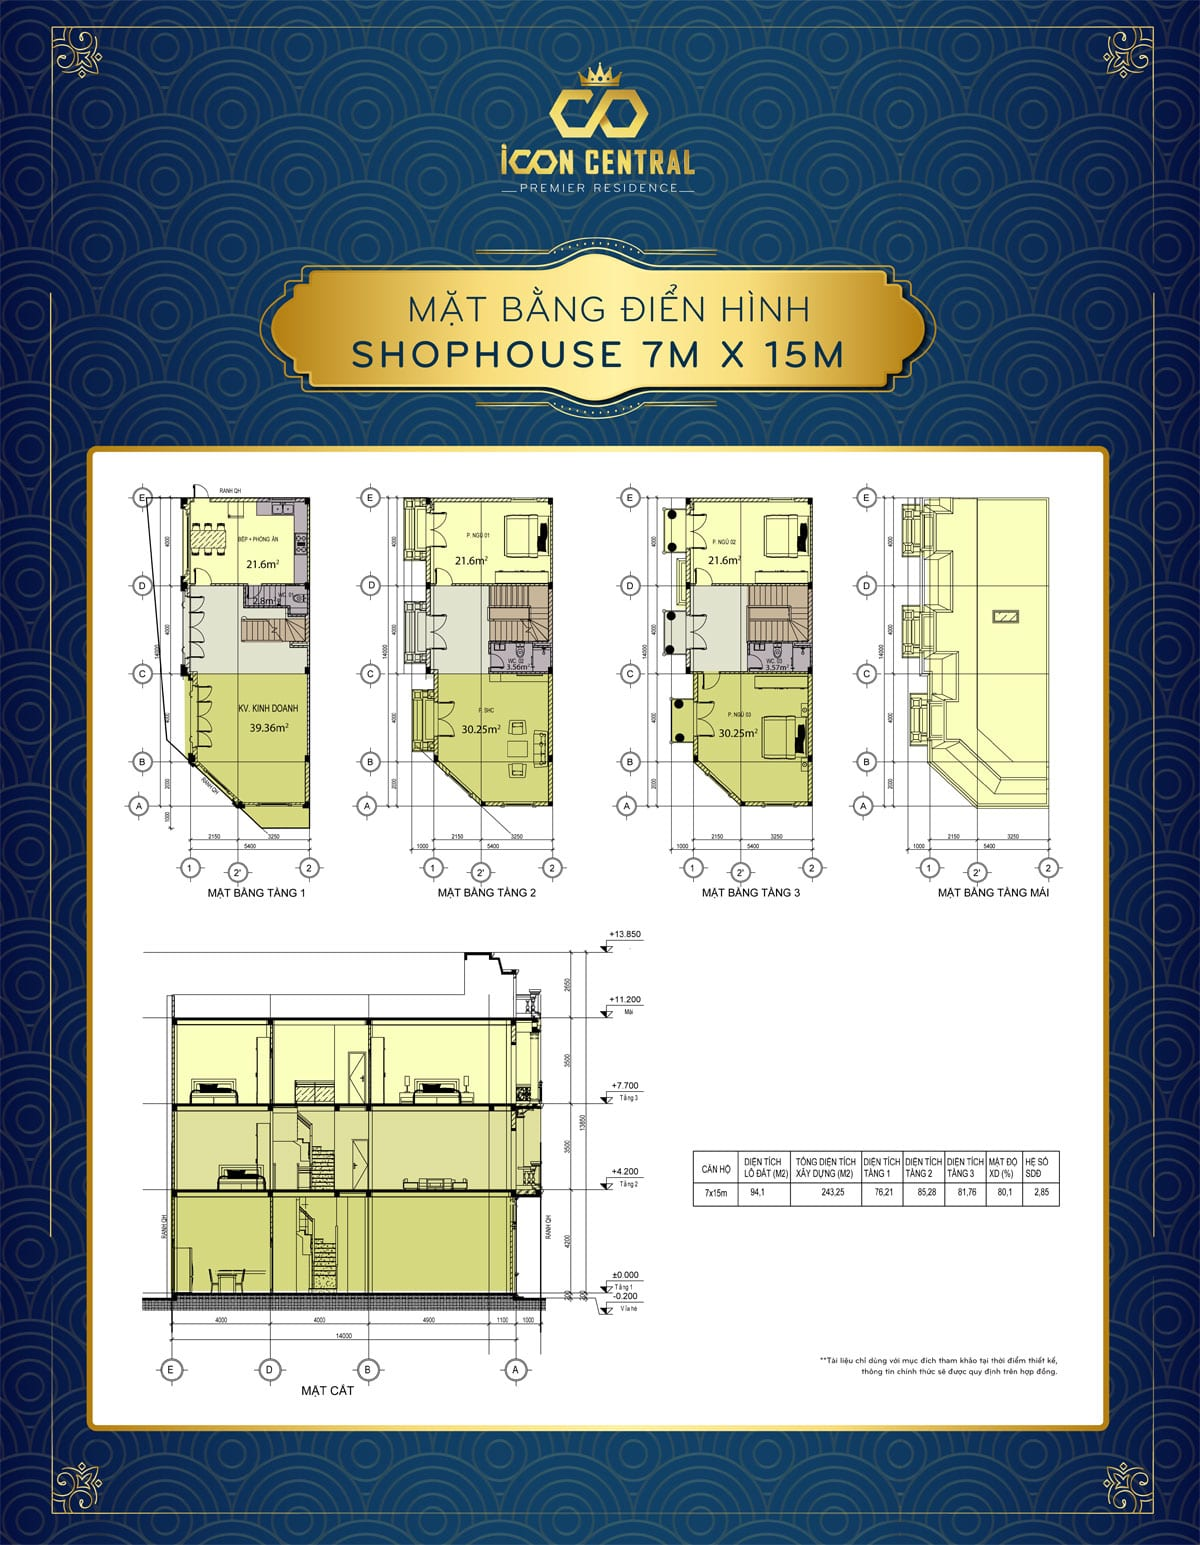 mat bang dien hinh shophouse 7x 15m icon central - SHOP OFFICE ICON CENTRAL DĨ AN BÌNH DƯƠNG